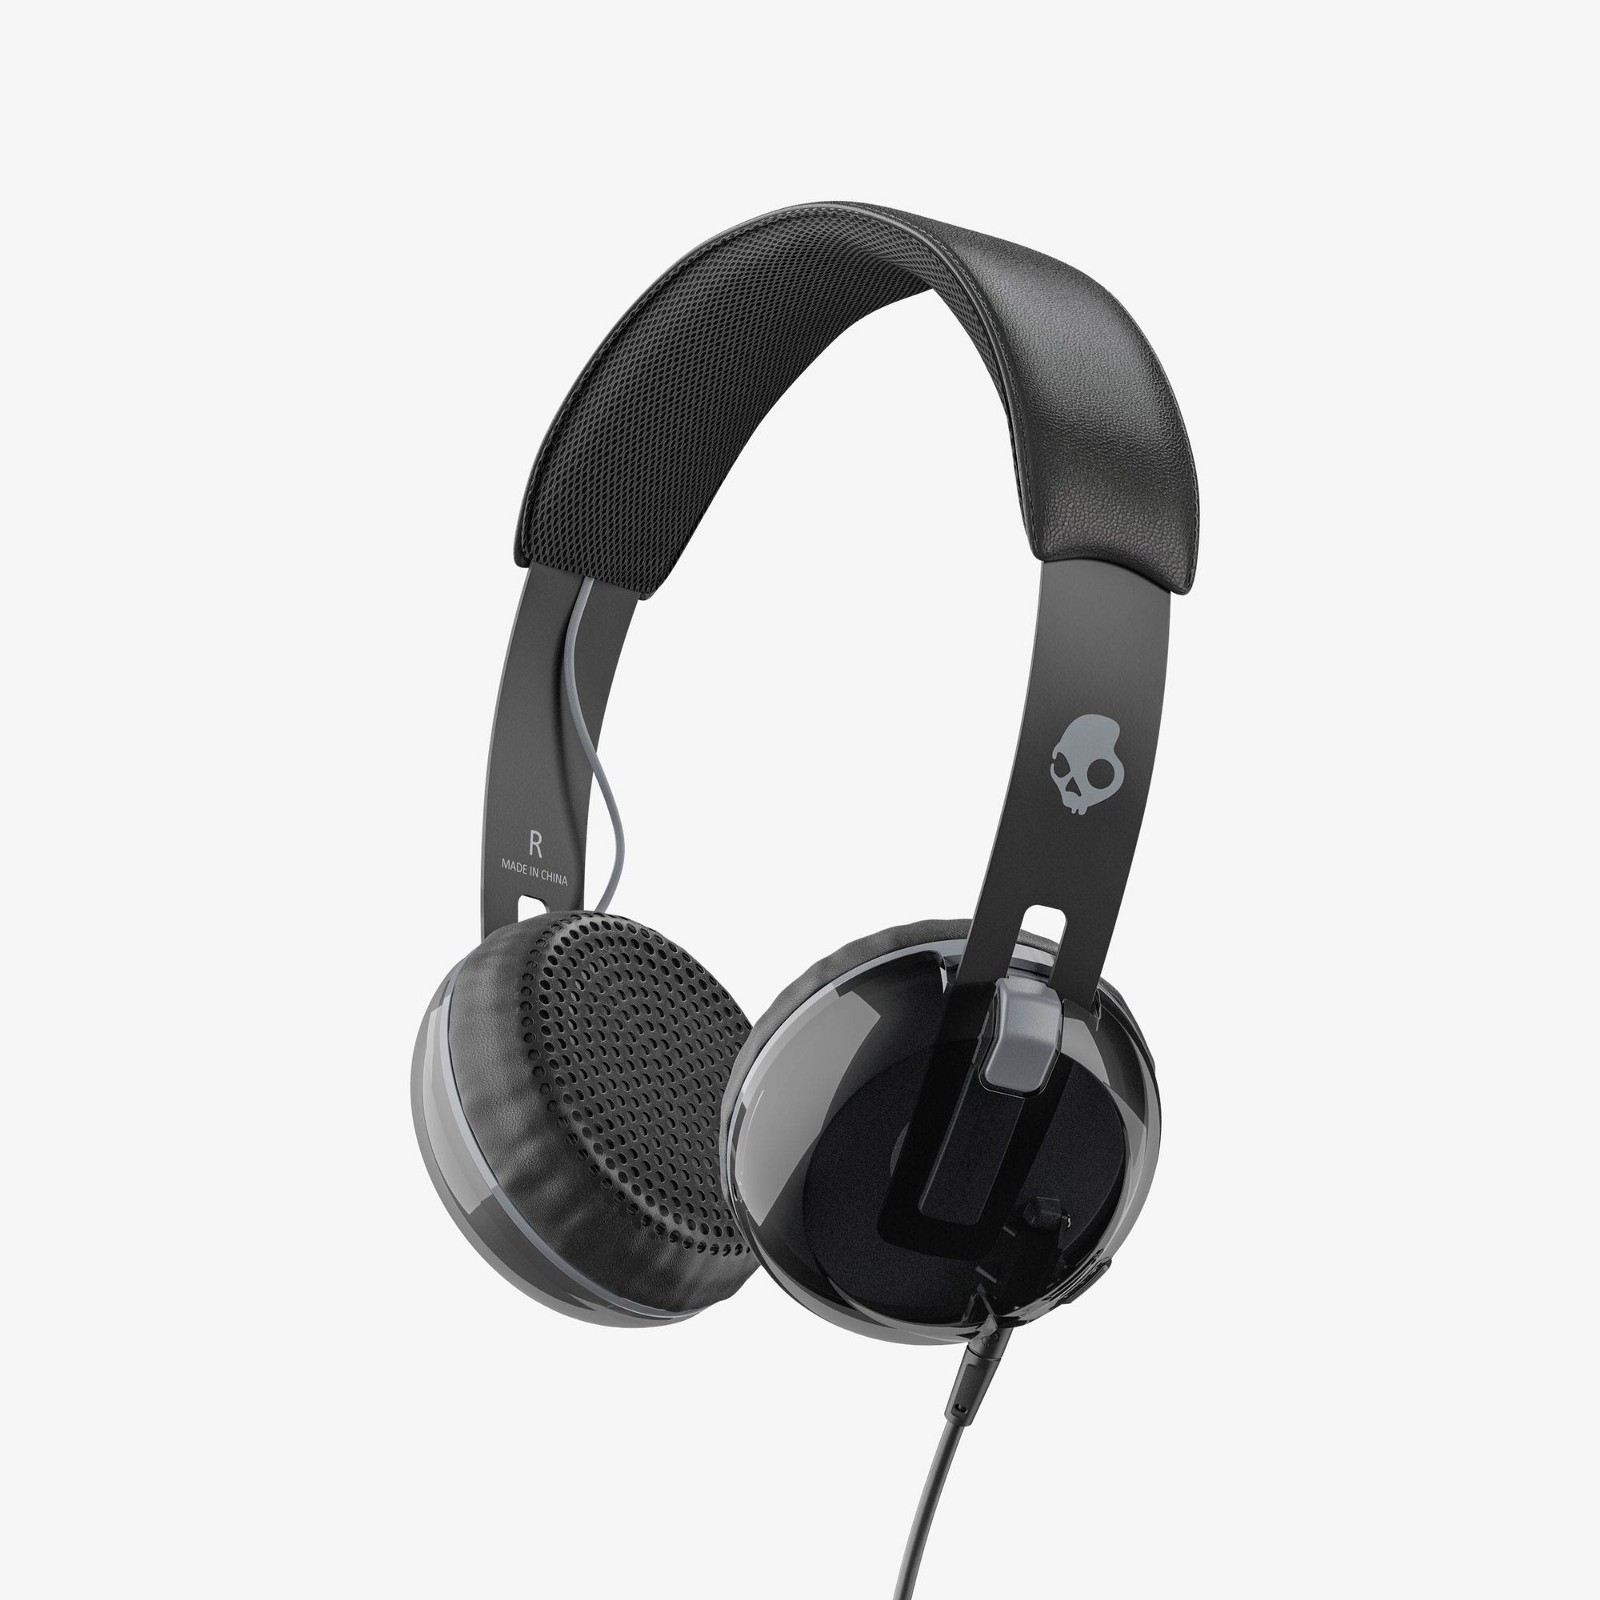 Headphone Showdown Audio Technica M50x Vs Everything Hello I Am New To Electronics It Has Recently Become A Hobby Have The Skullcandy Grind In Black With Cable Attached If They Ever Made One That Was Collapsible Id Recommend Even Harder